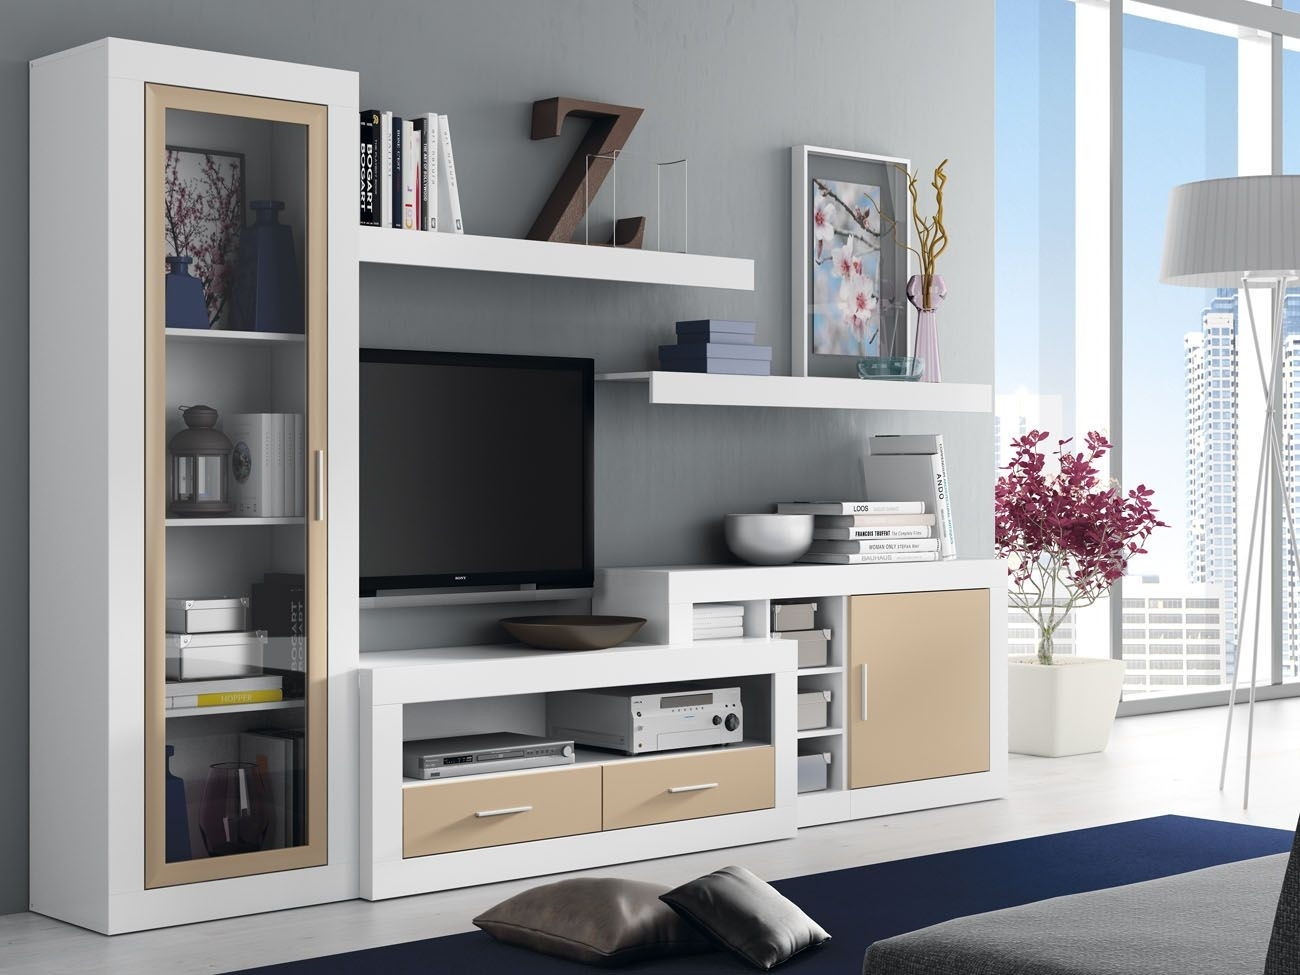 Racks de tv productos muebles rosario placares for Placares cocina